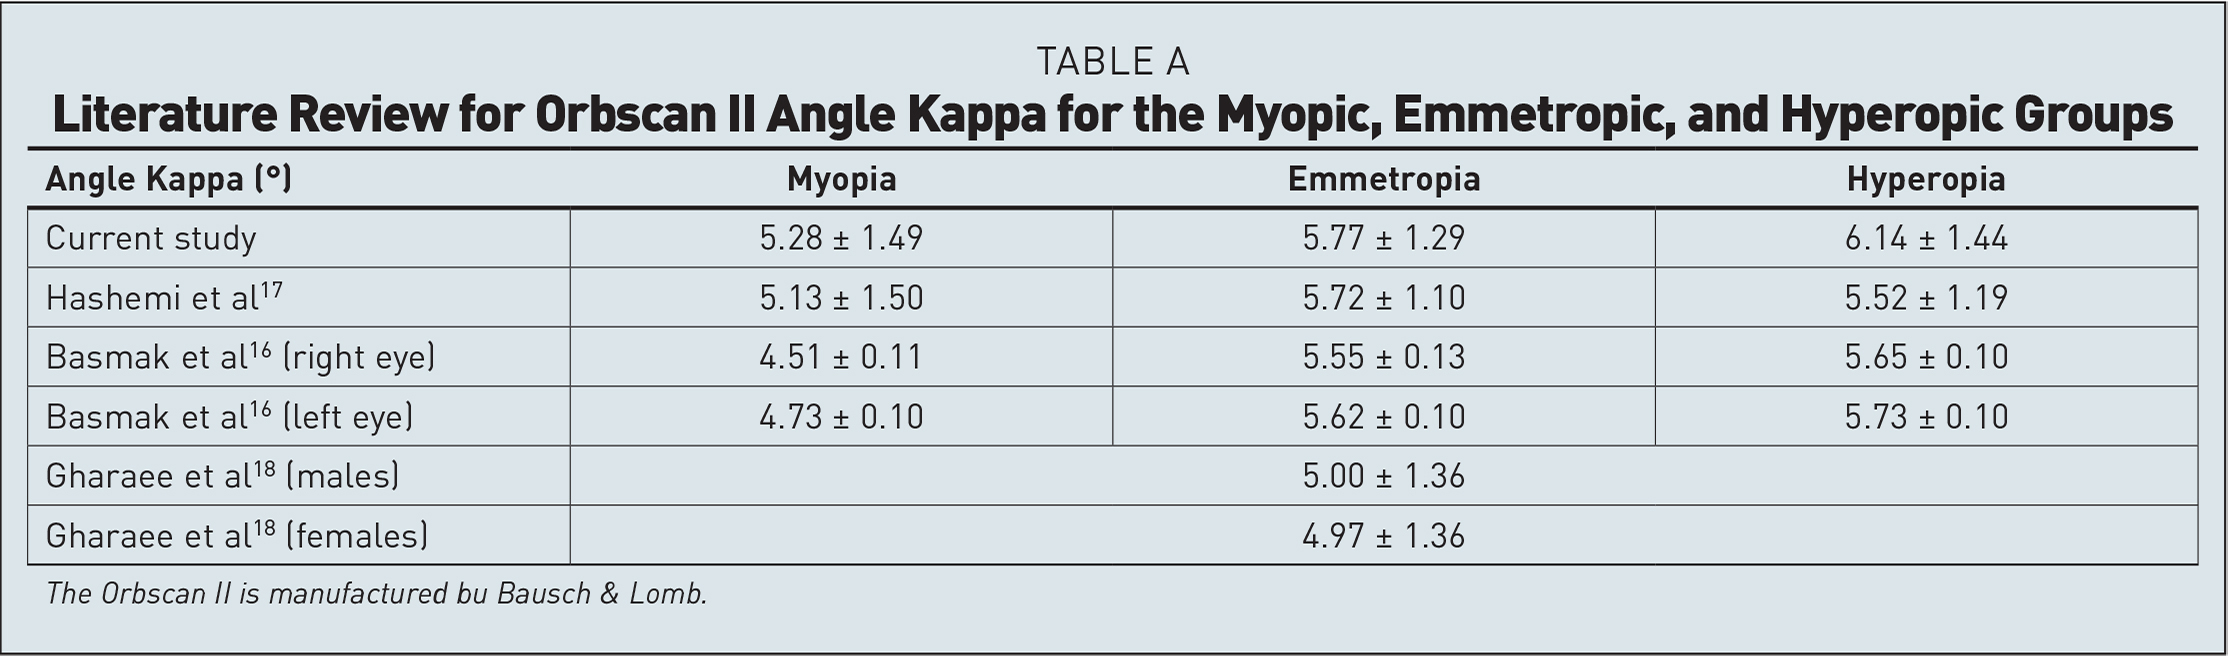 Literature Review for Orbscan II Angle Kappa for the Myopic, Emmetropic, and Hyperopic Groups